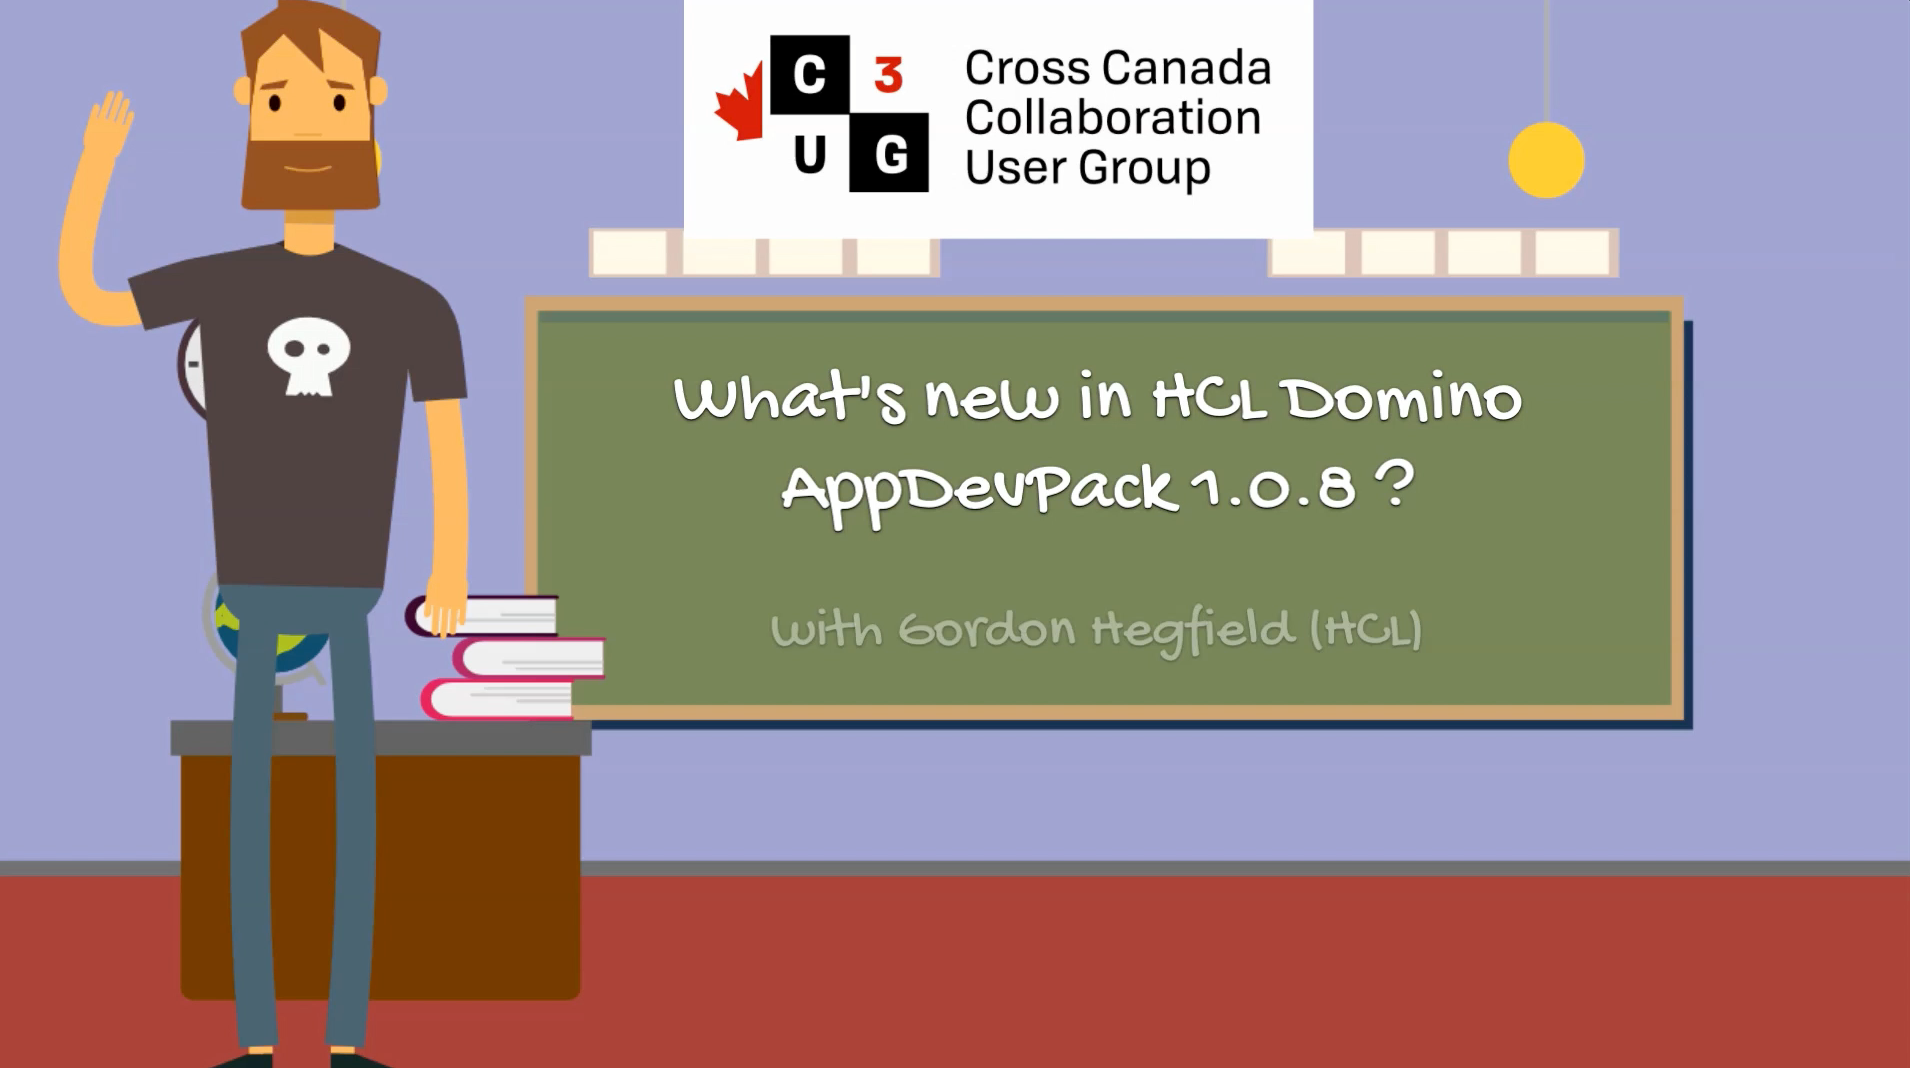 New Video from C3UG: What's new in HCL Domino AppDevPack 1.0.8 ?